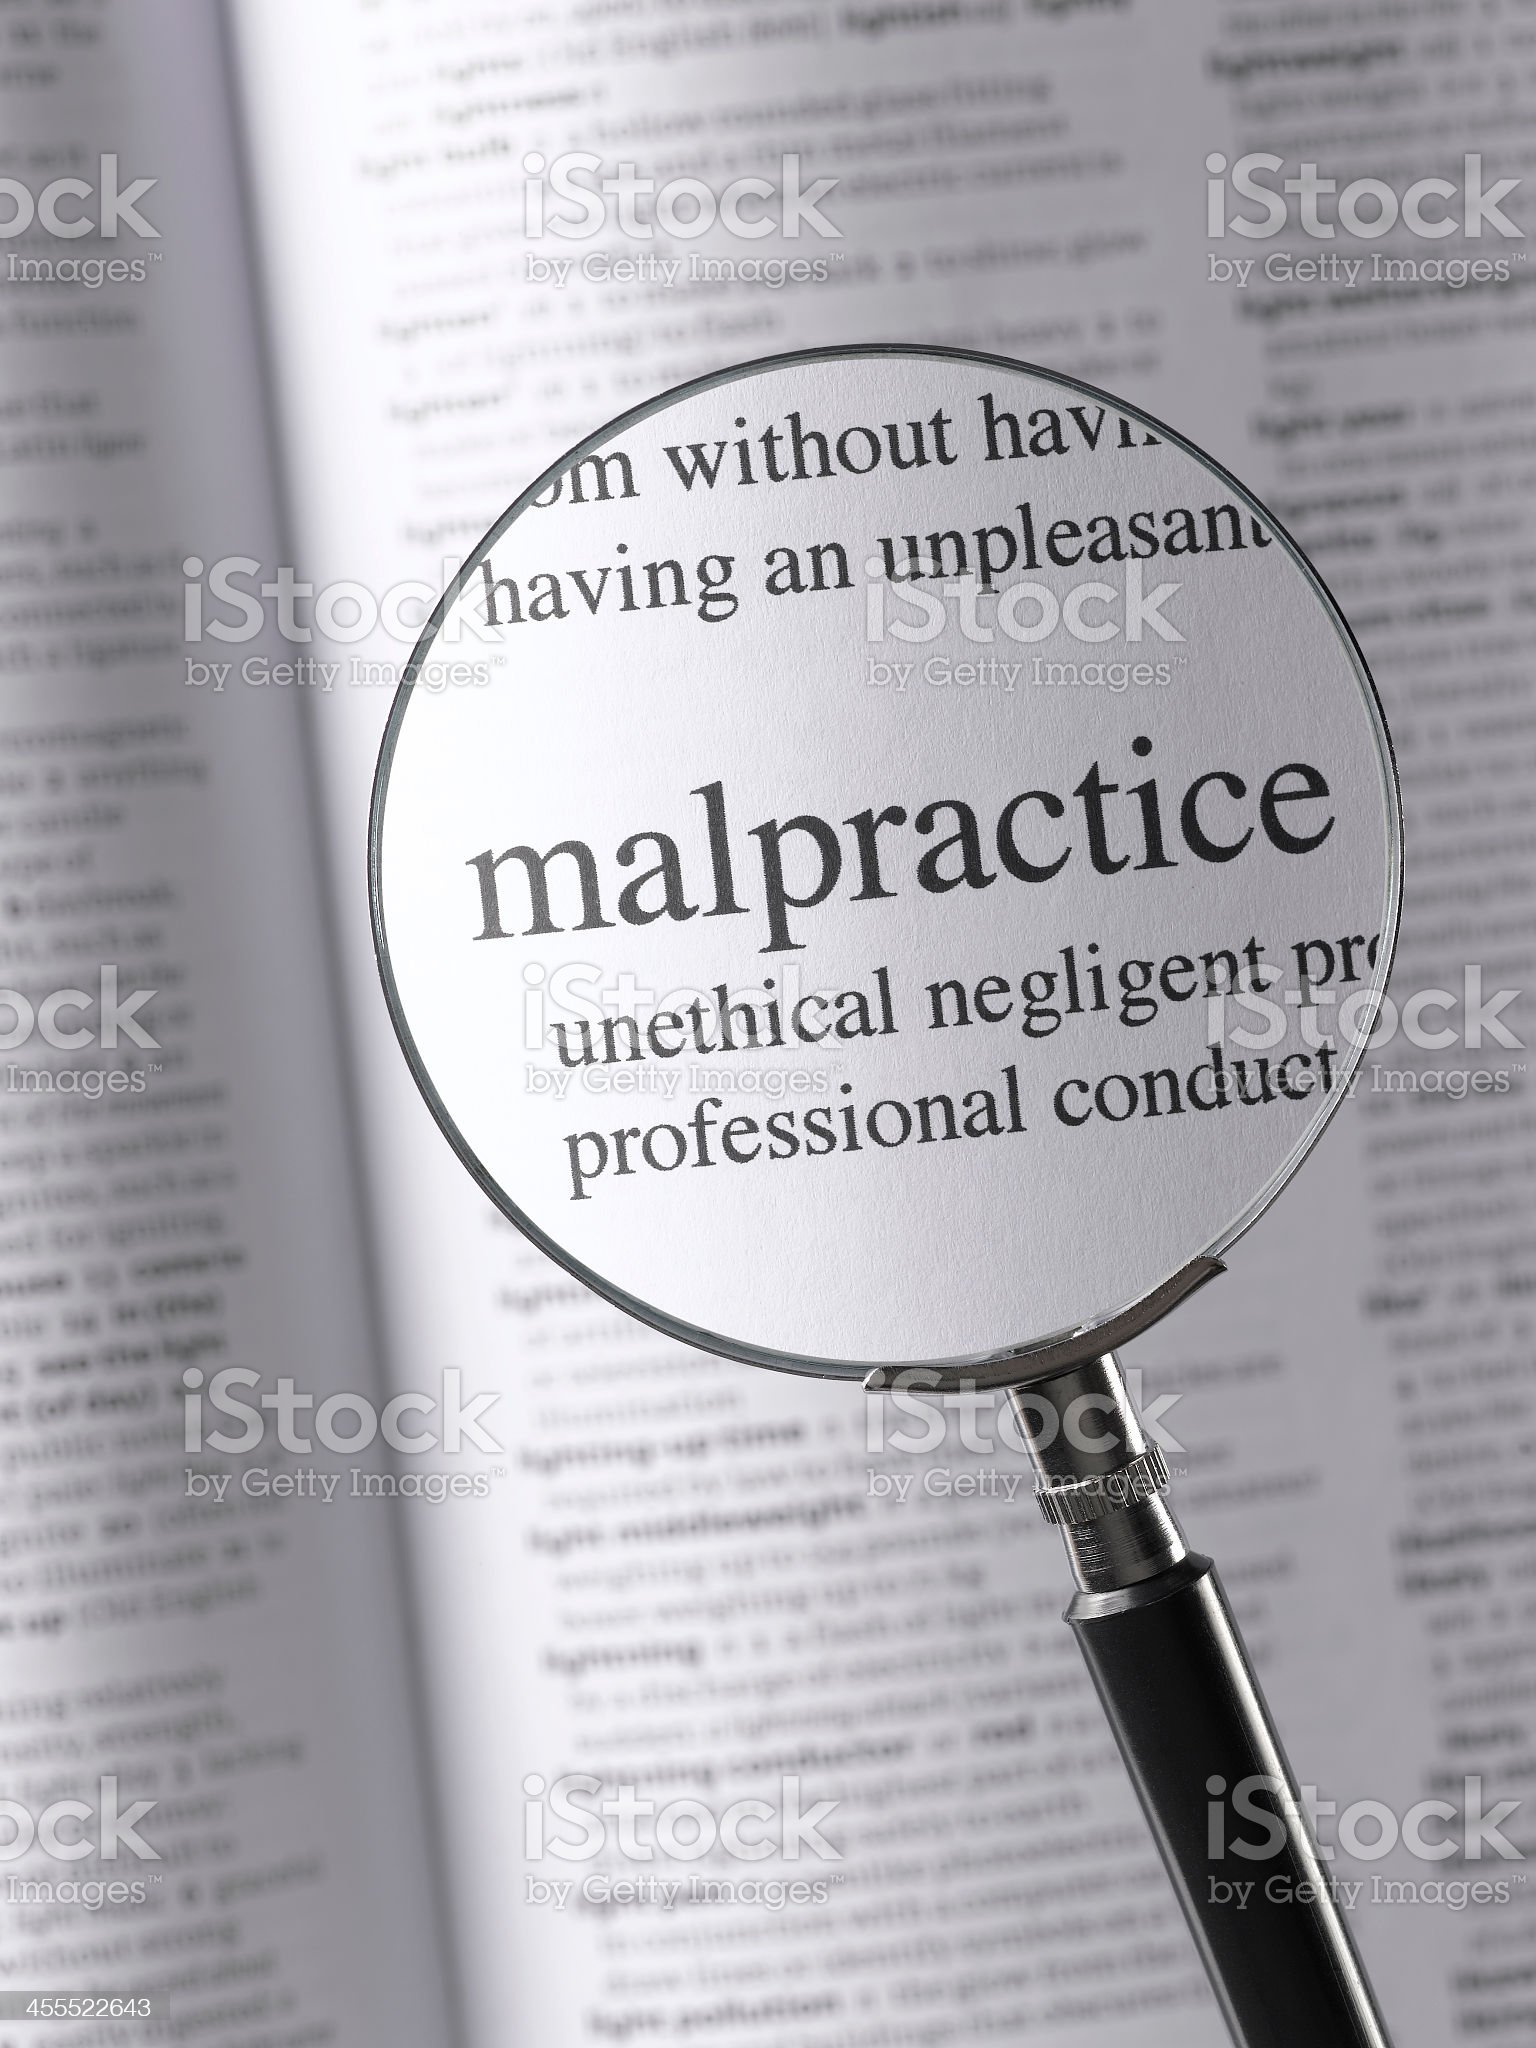 Malpractice printed on newspaper under a magnifying glass royalty-free stock photo